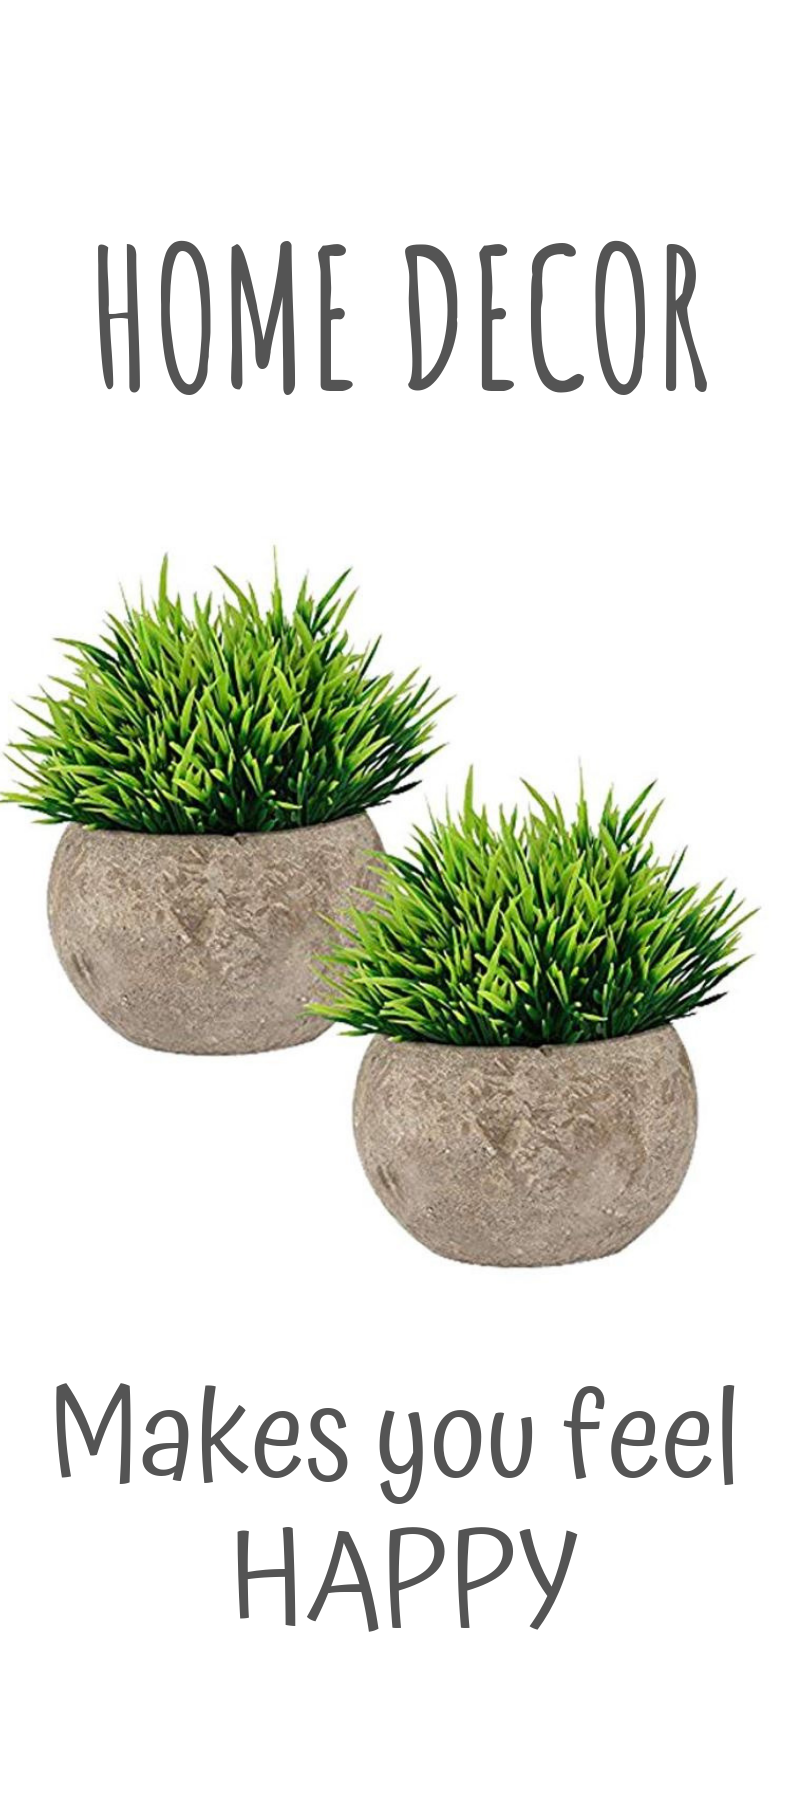 The Bloom Times Fake Plant For Bathroom Home Decor Small Artificial Faux Greenery For House Decorations Potted With Images Bathroom Plants Fake Plants Artificial Plants